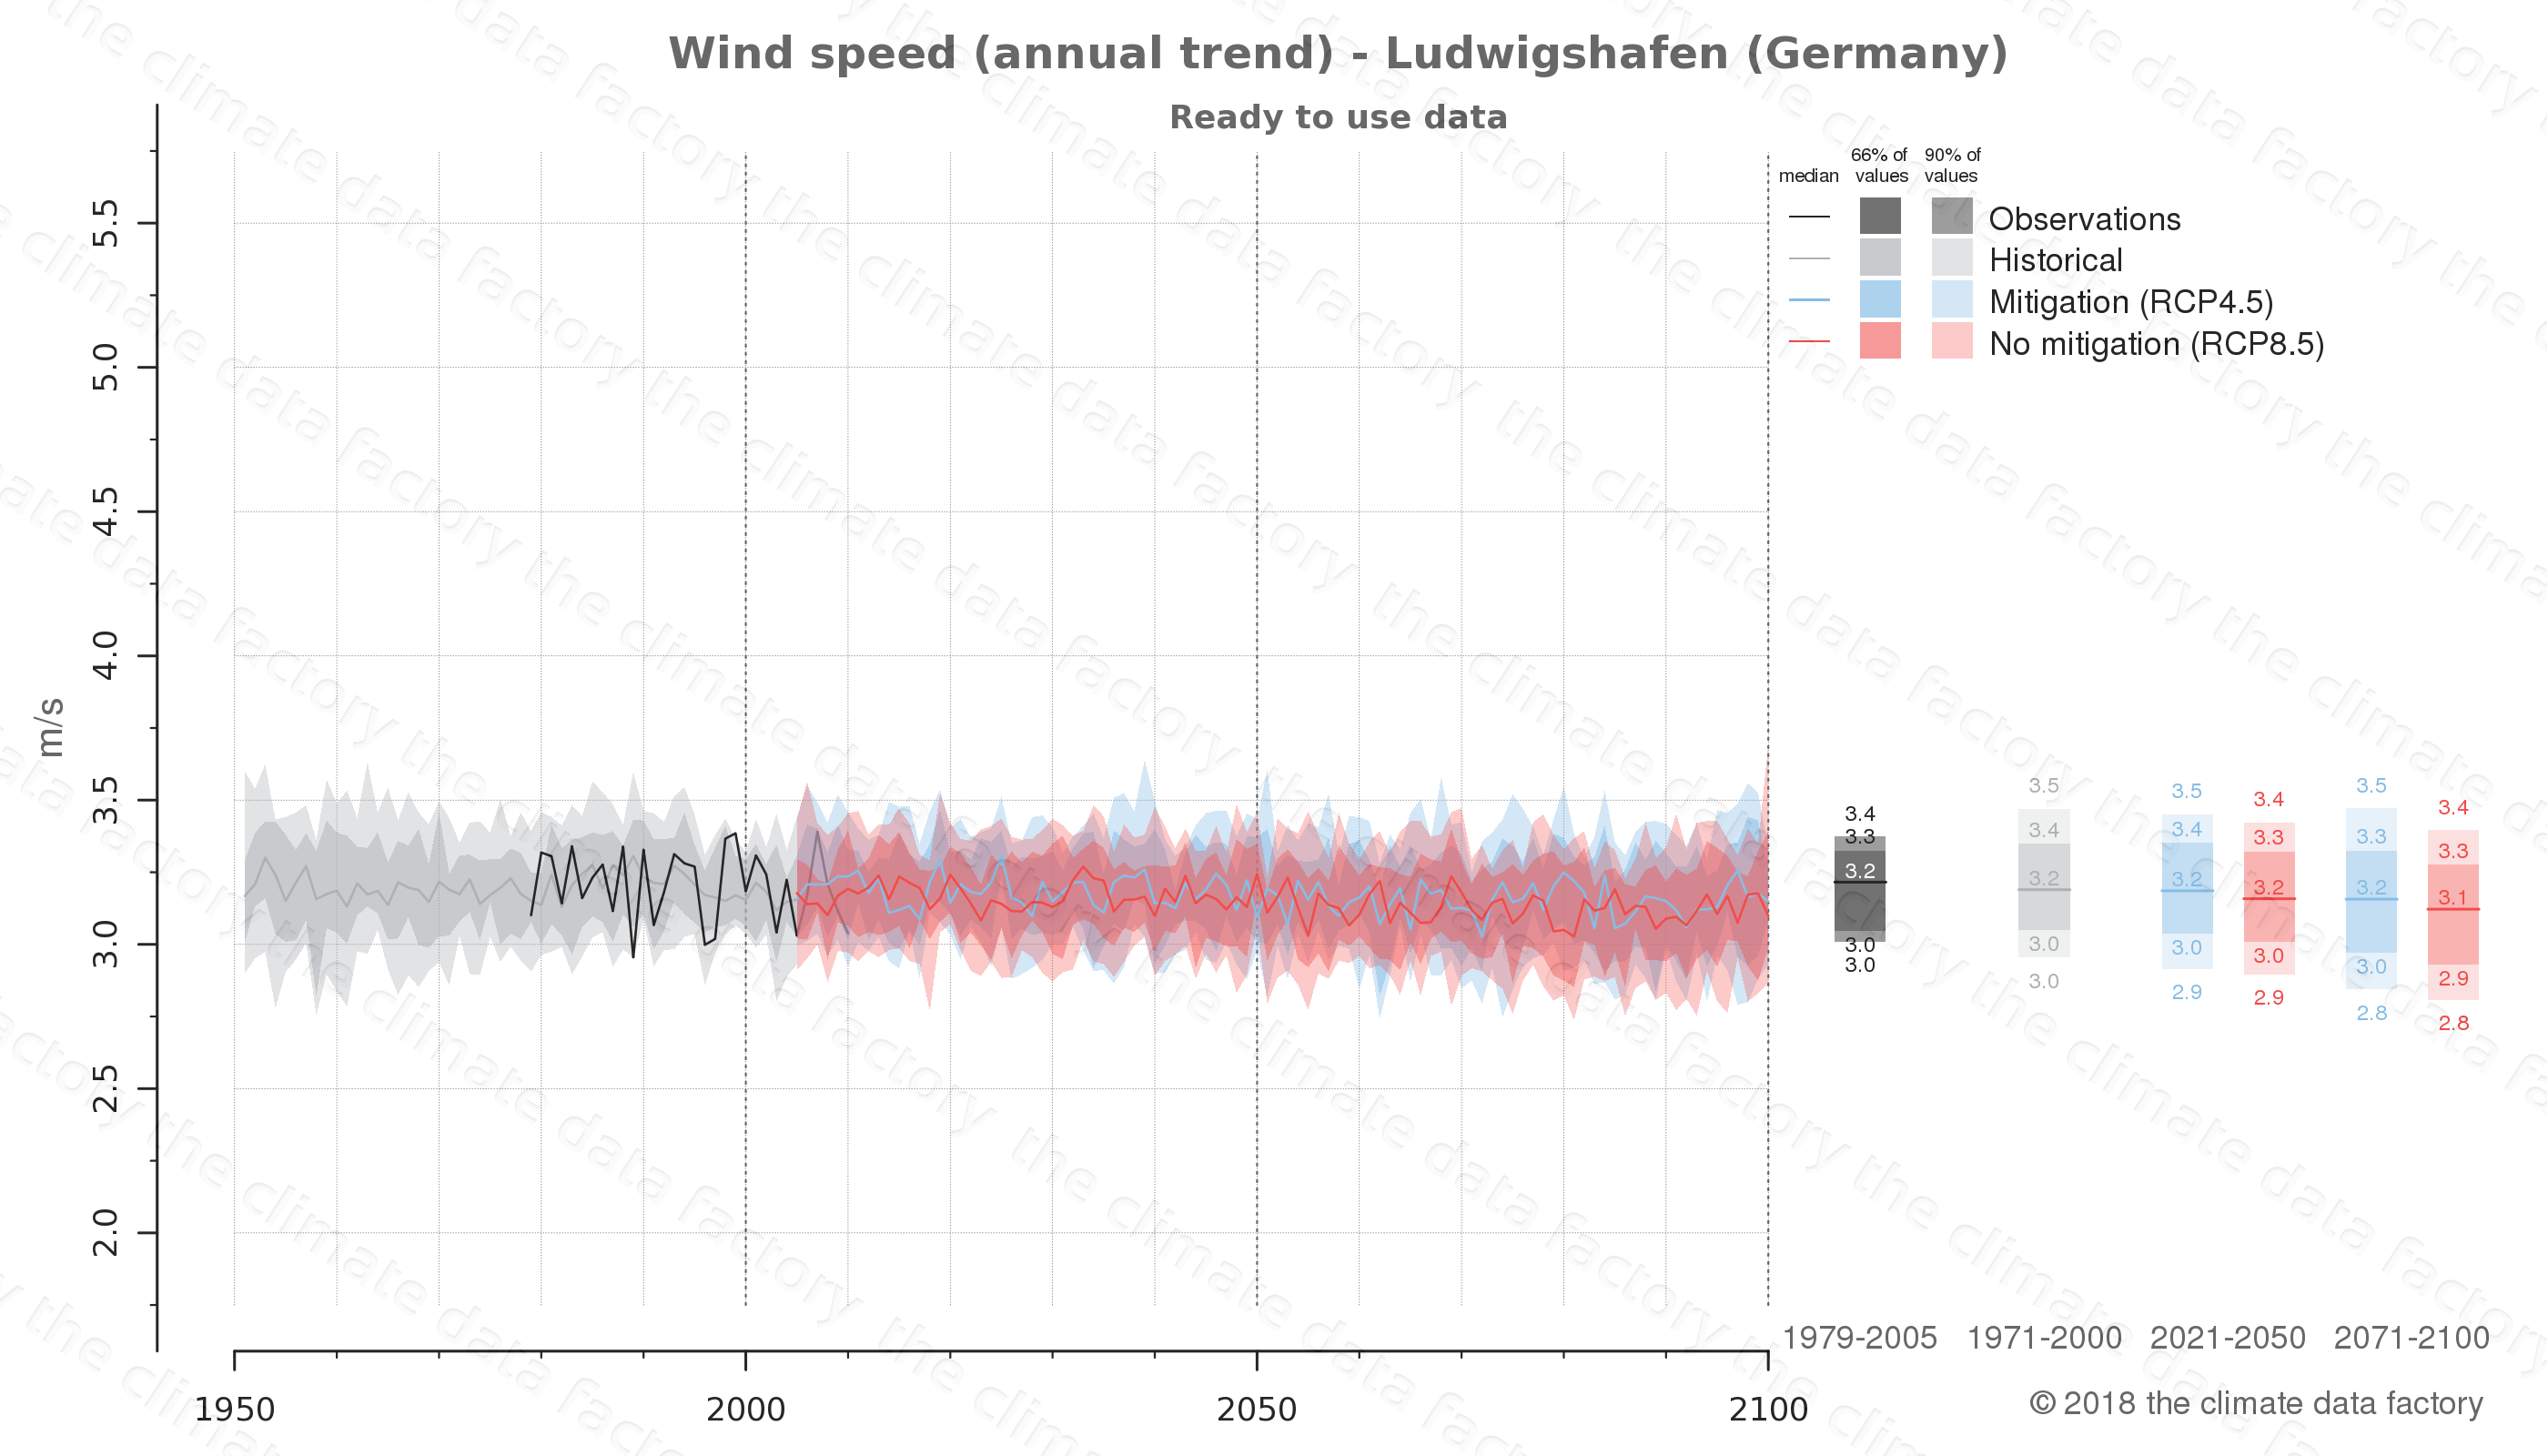 climate change data policy adaptation climate graph city data wind-speed ludwigshafen germany